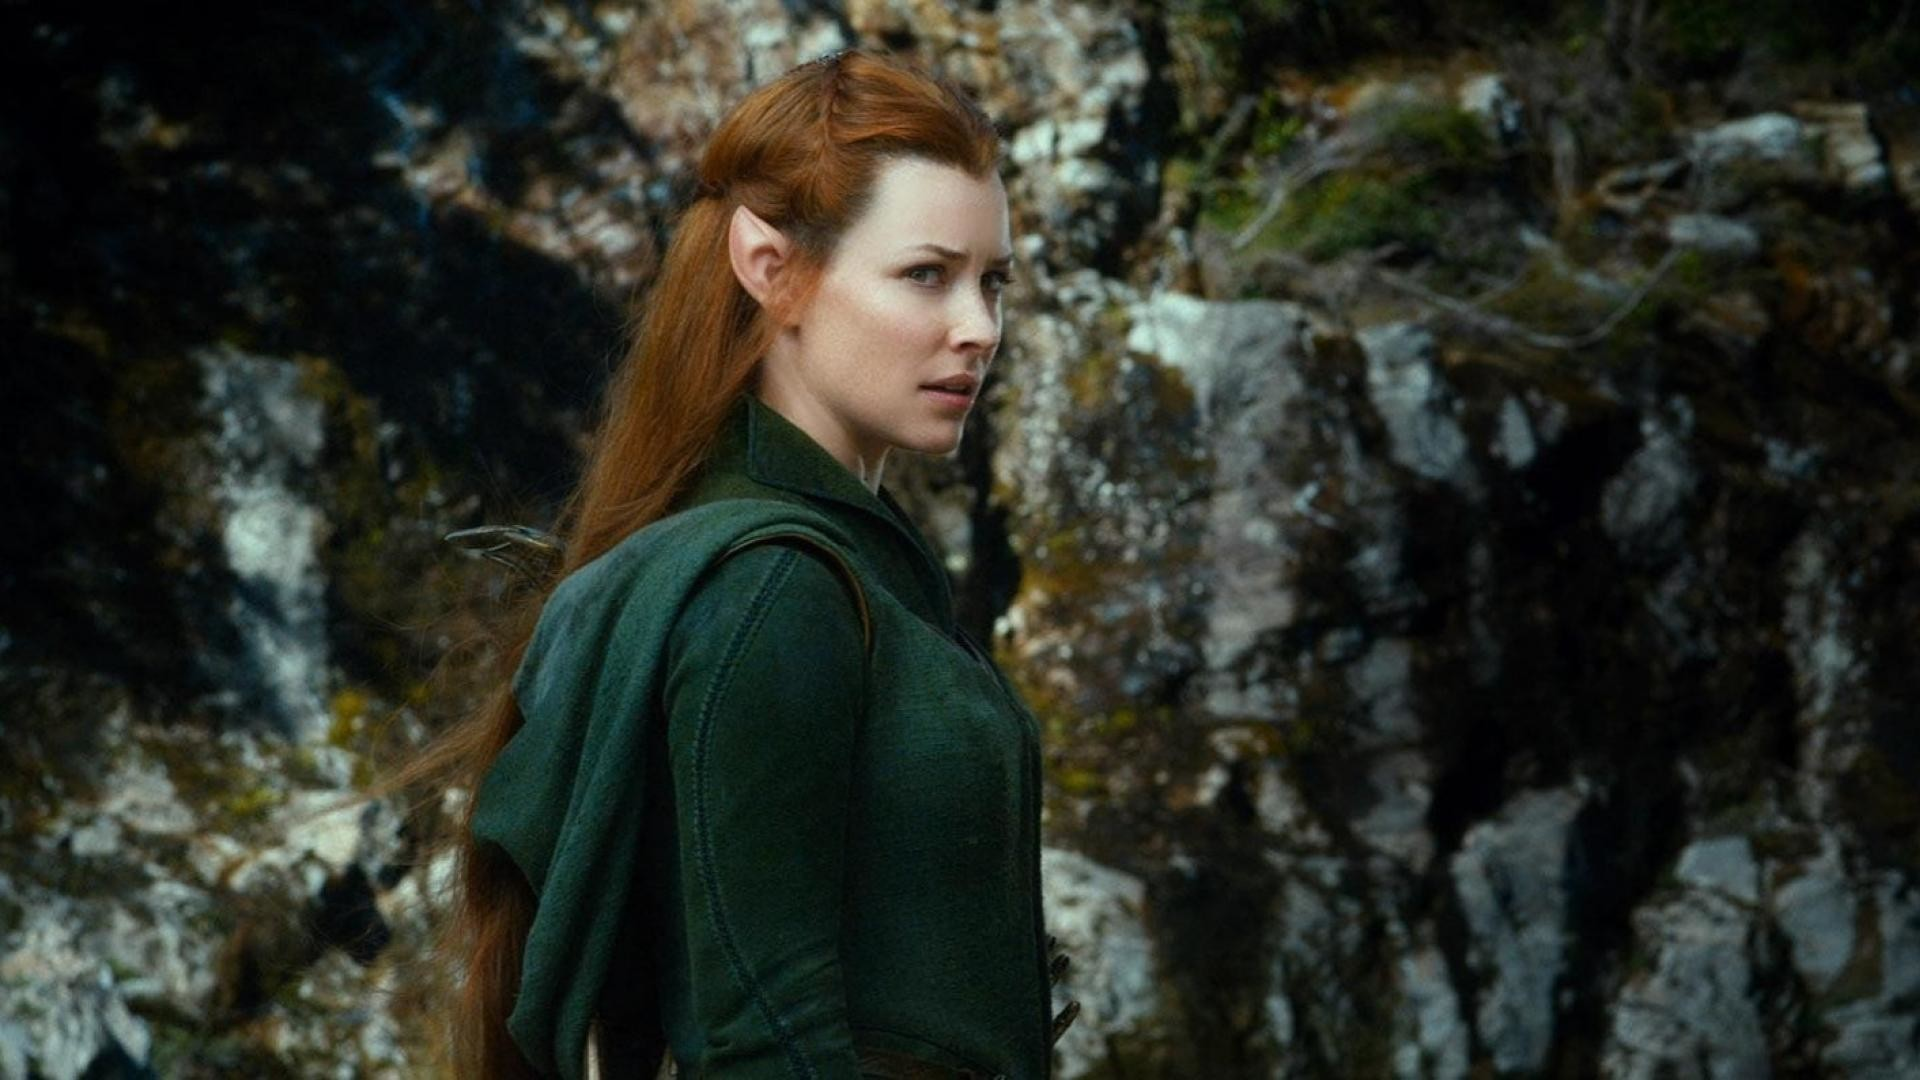 1920x1080 Tauriel and Legolas In The Hobbit 2 Wallpaper Free iPhone Wallpapers